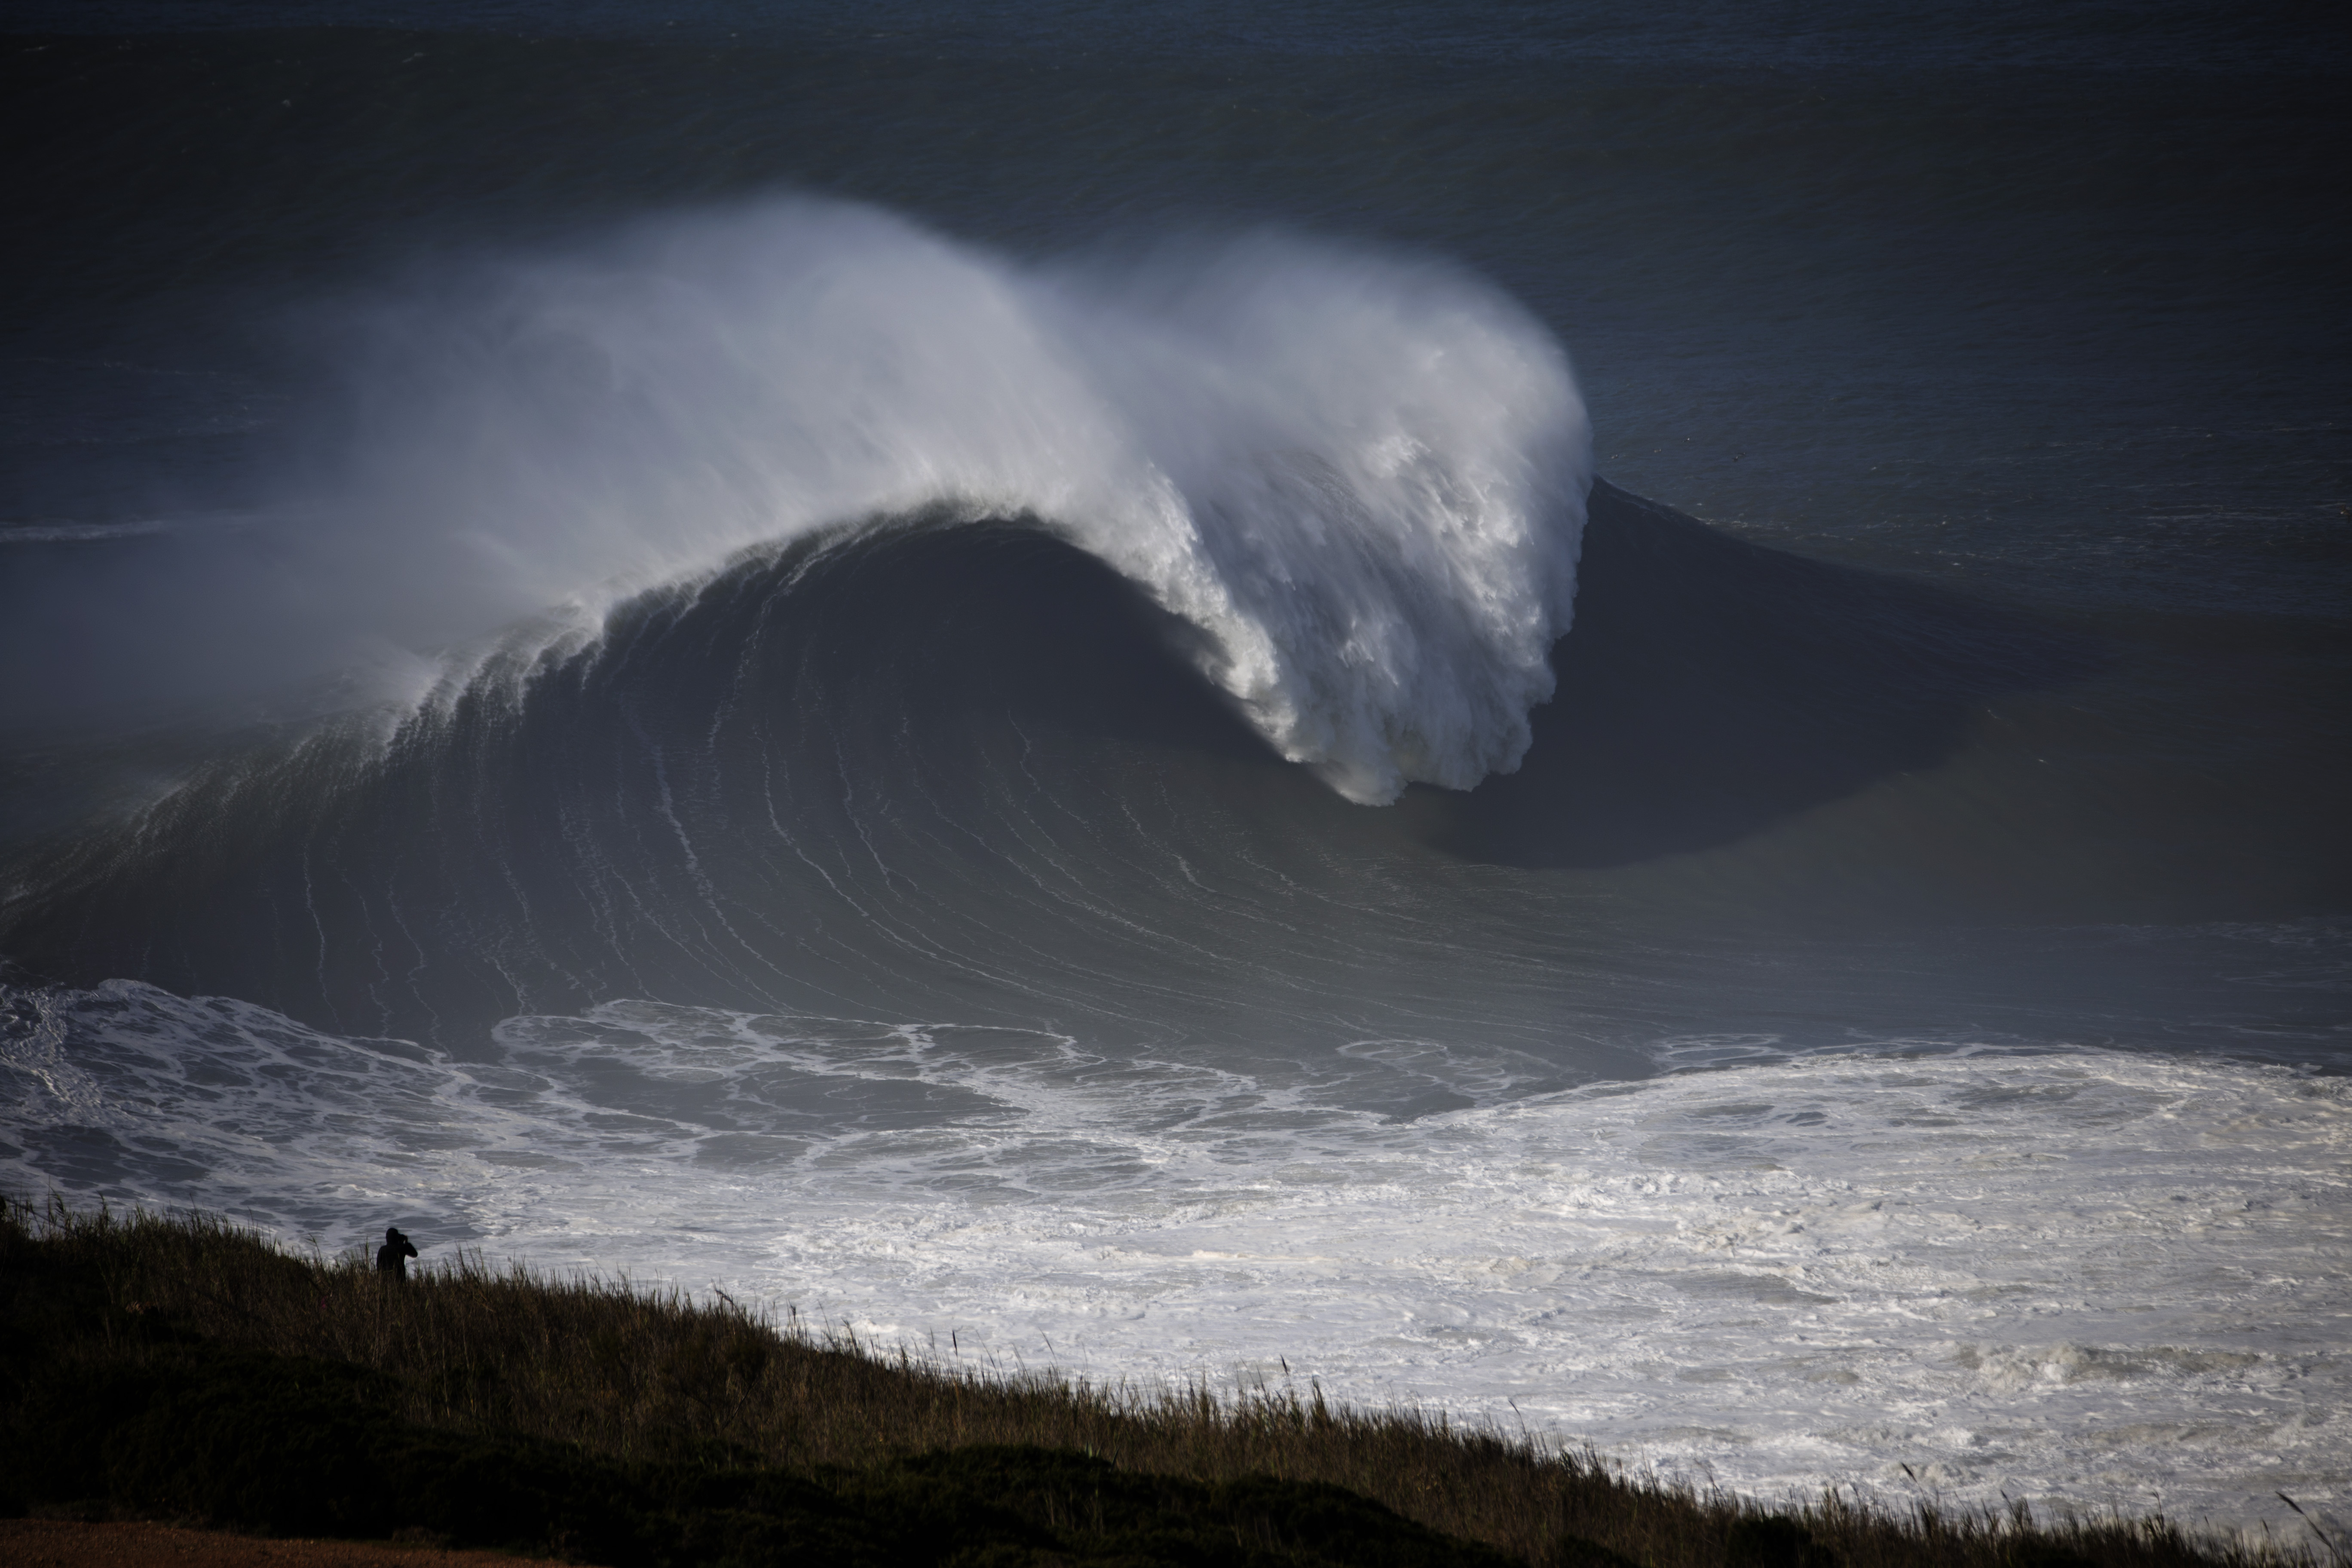 Mechanics of Nazare, Portugal: How to Produce World's ... on electromagnetic wave, spawn wave, steady wave, next wave, space wave, maroon wave, laser wave,